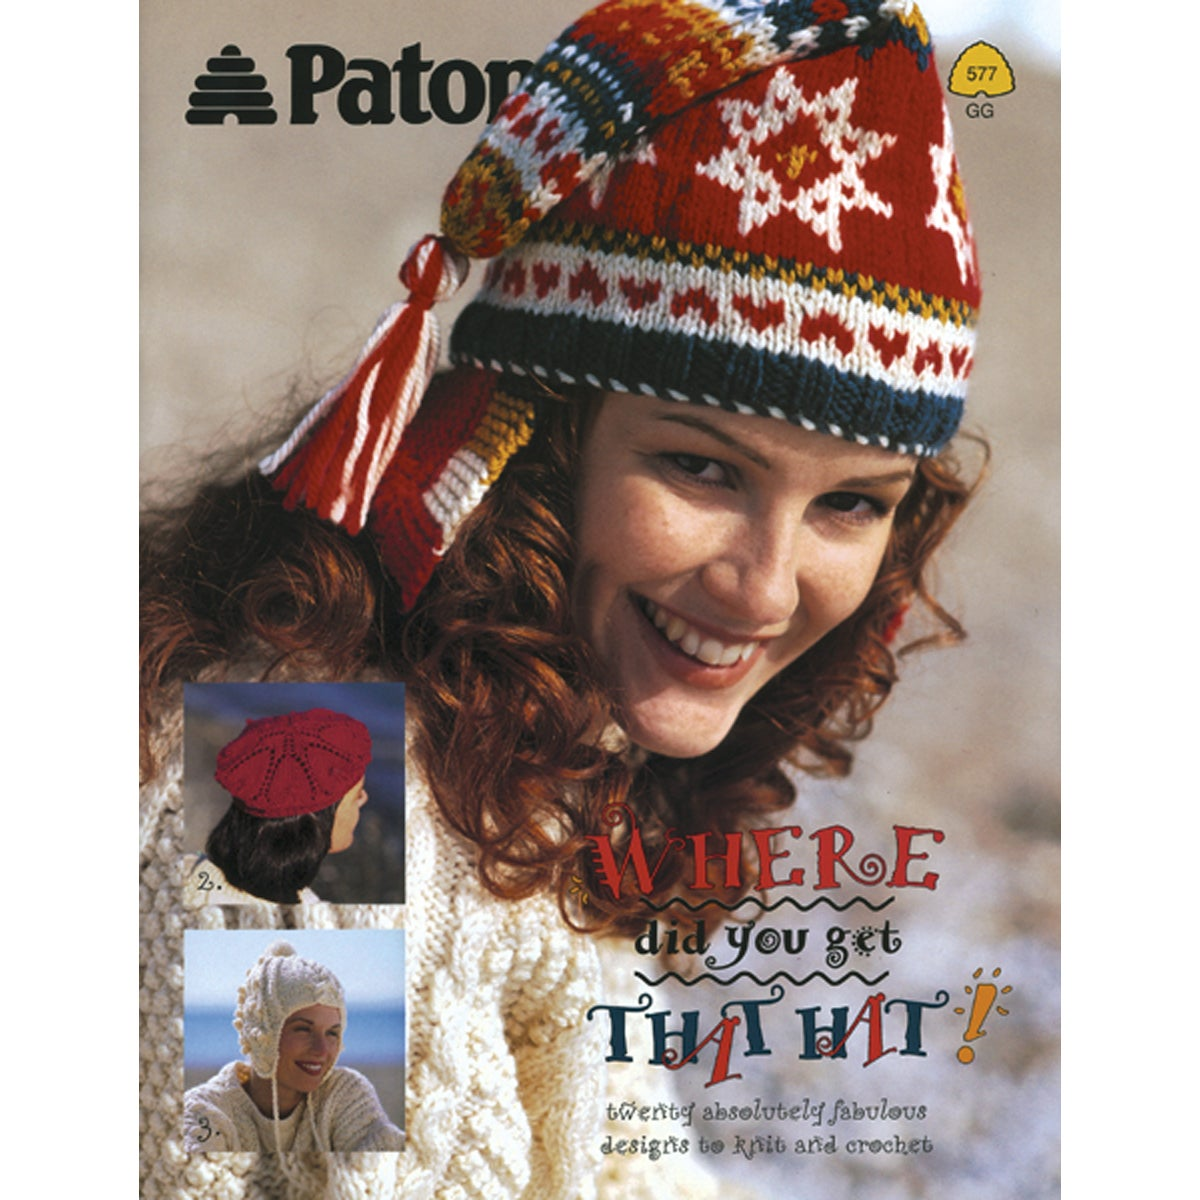 Patons-Where Did You Get That Hat? -Patons